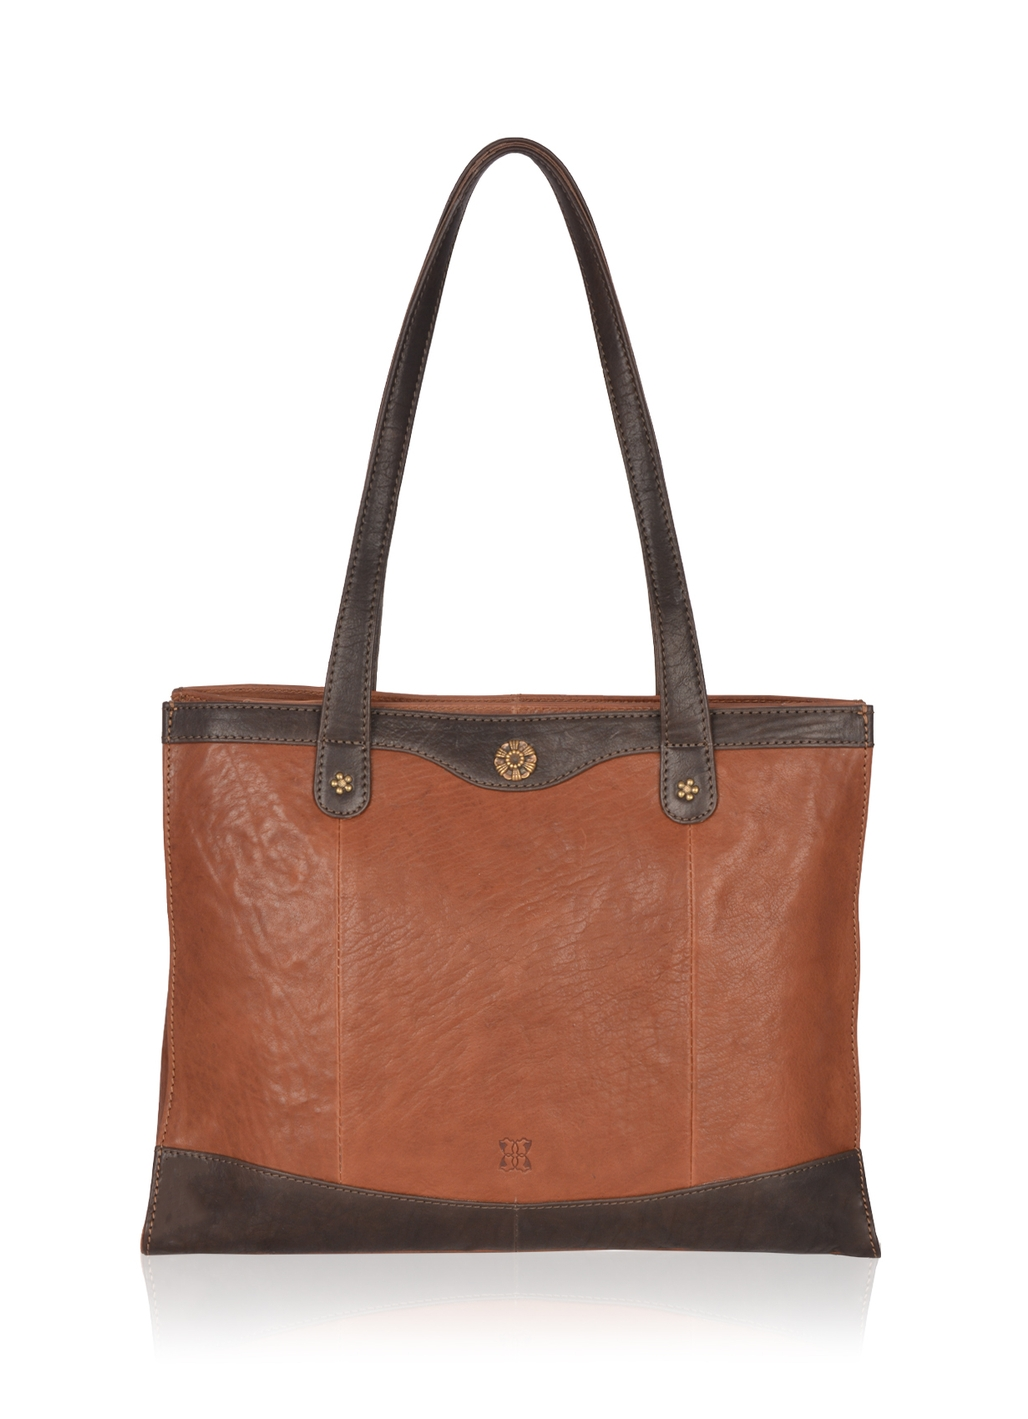 Hartsop Large Leather Shoulder Bag in Brown